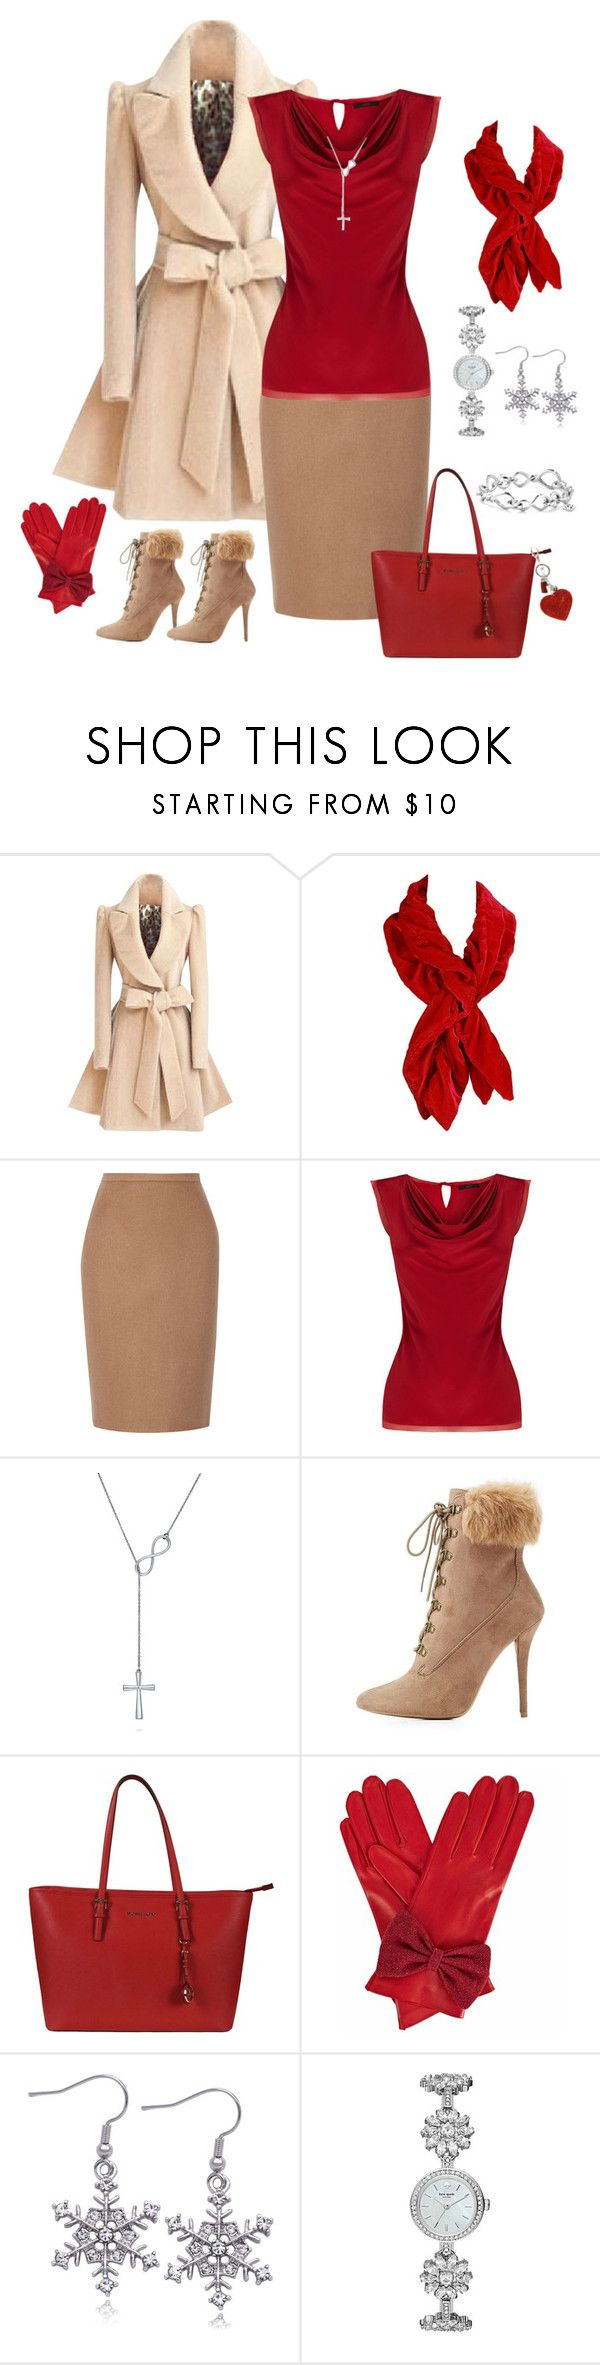 """Winter Capsule, Neutral Skirt"" by piakarlson on Polyvore featuring INC International Concepts, MaxMara, Coast, BERRICLE, Wild Diva, Michael Kors, Gizelle Renee, Kate Spade and David Yurman"